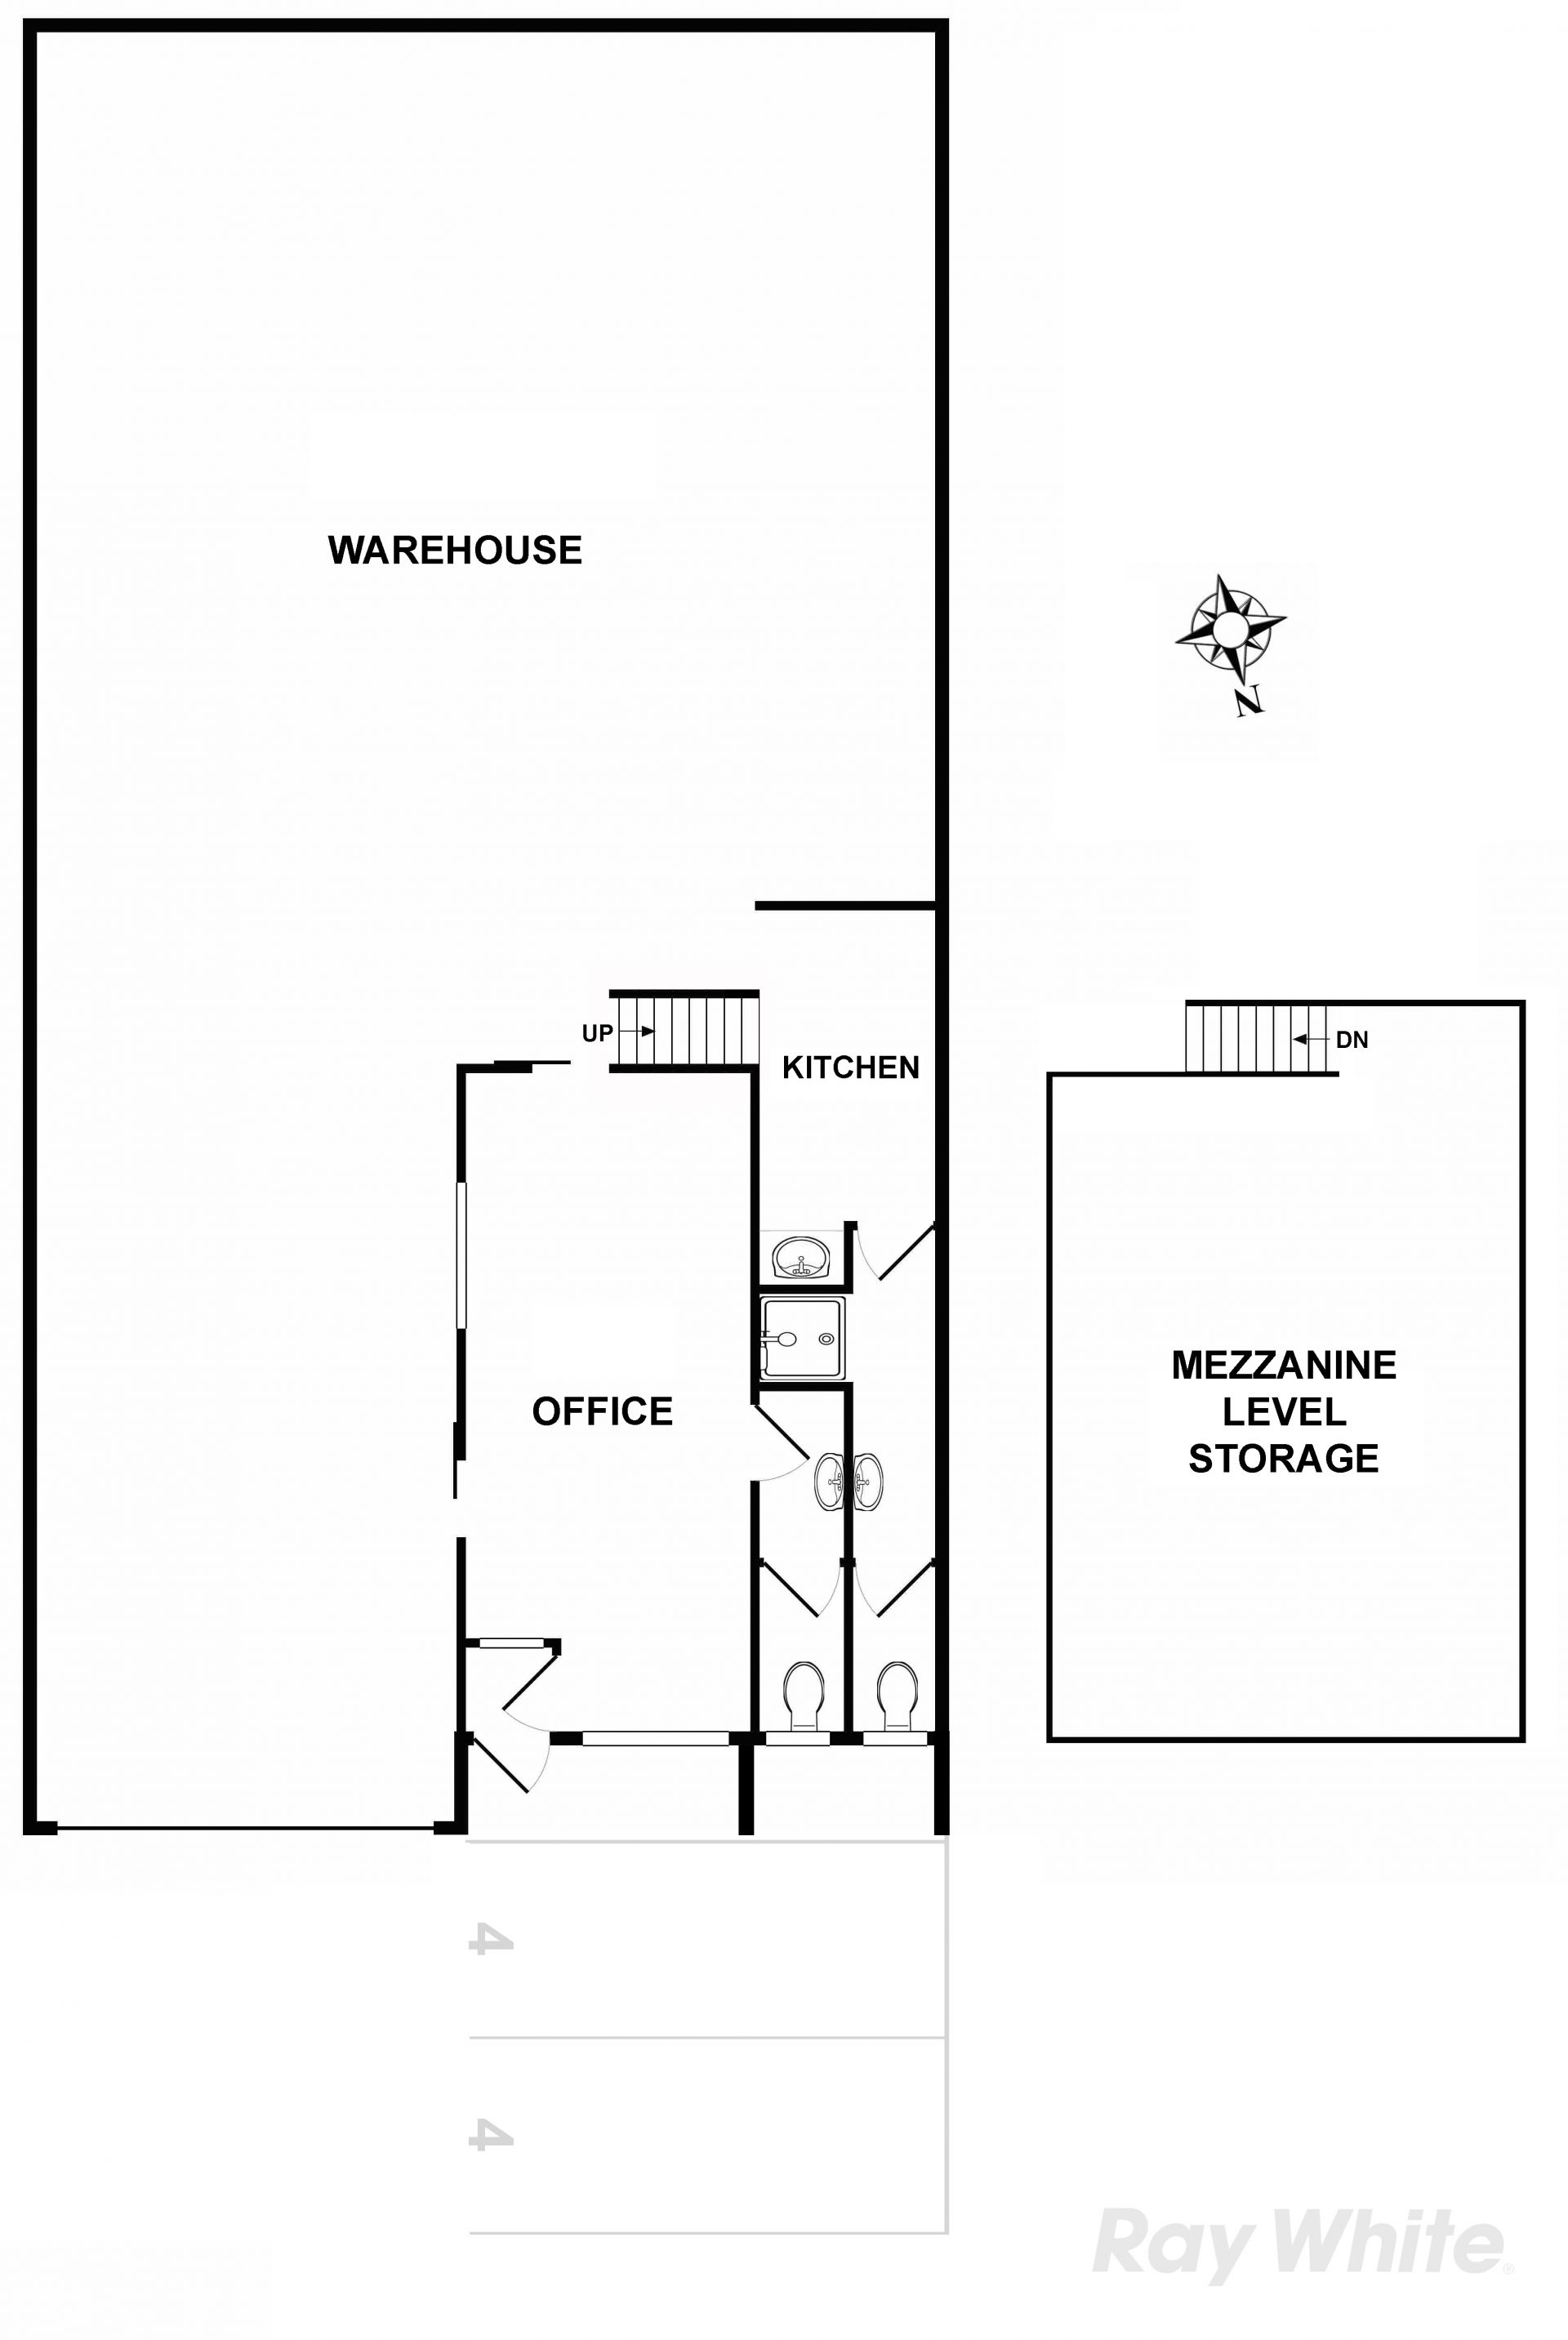 Tenanted Investment - Industrial Warehouse / Office